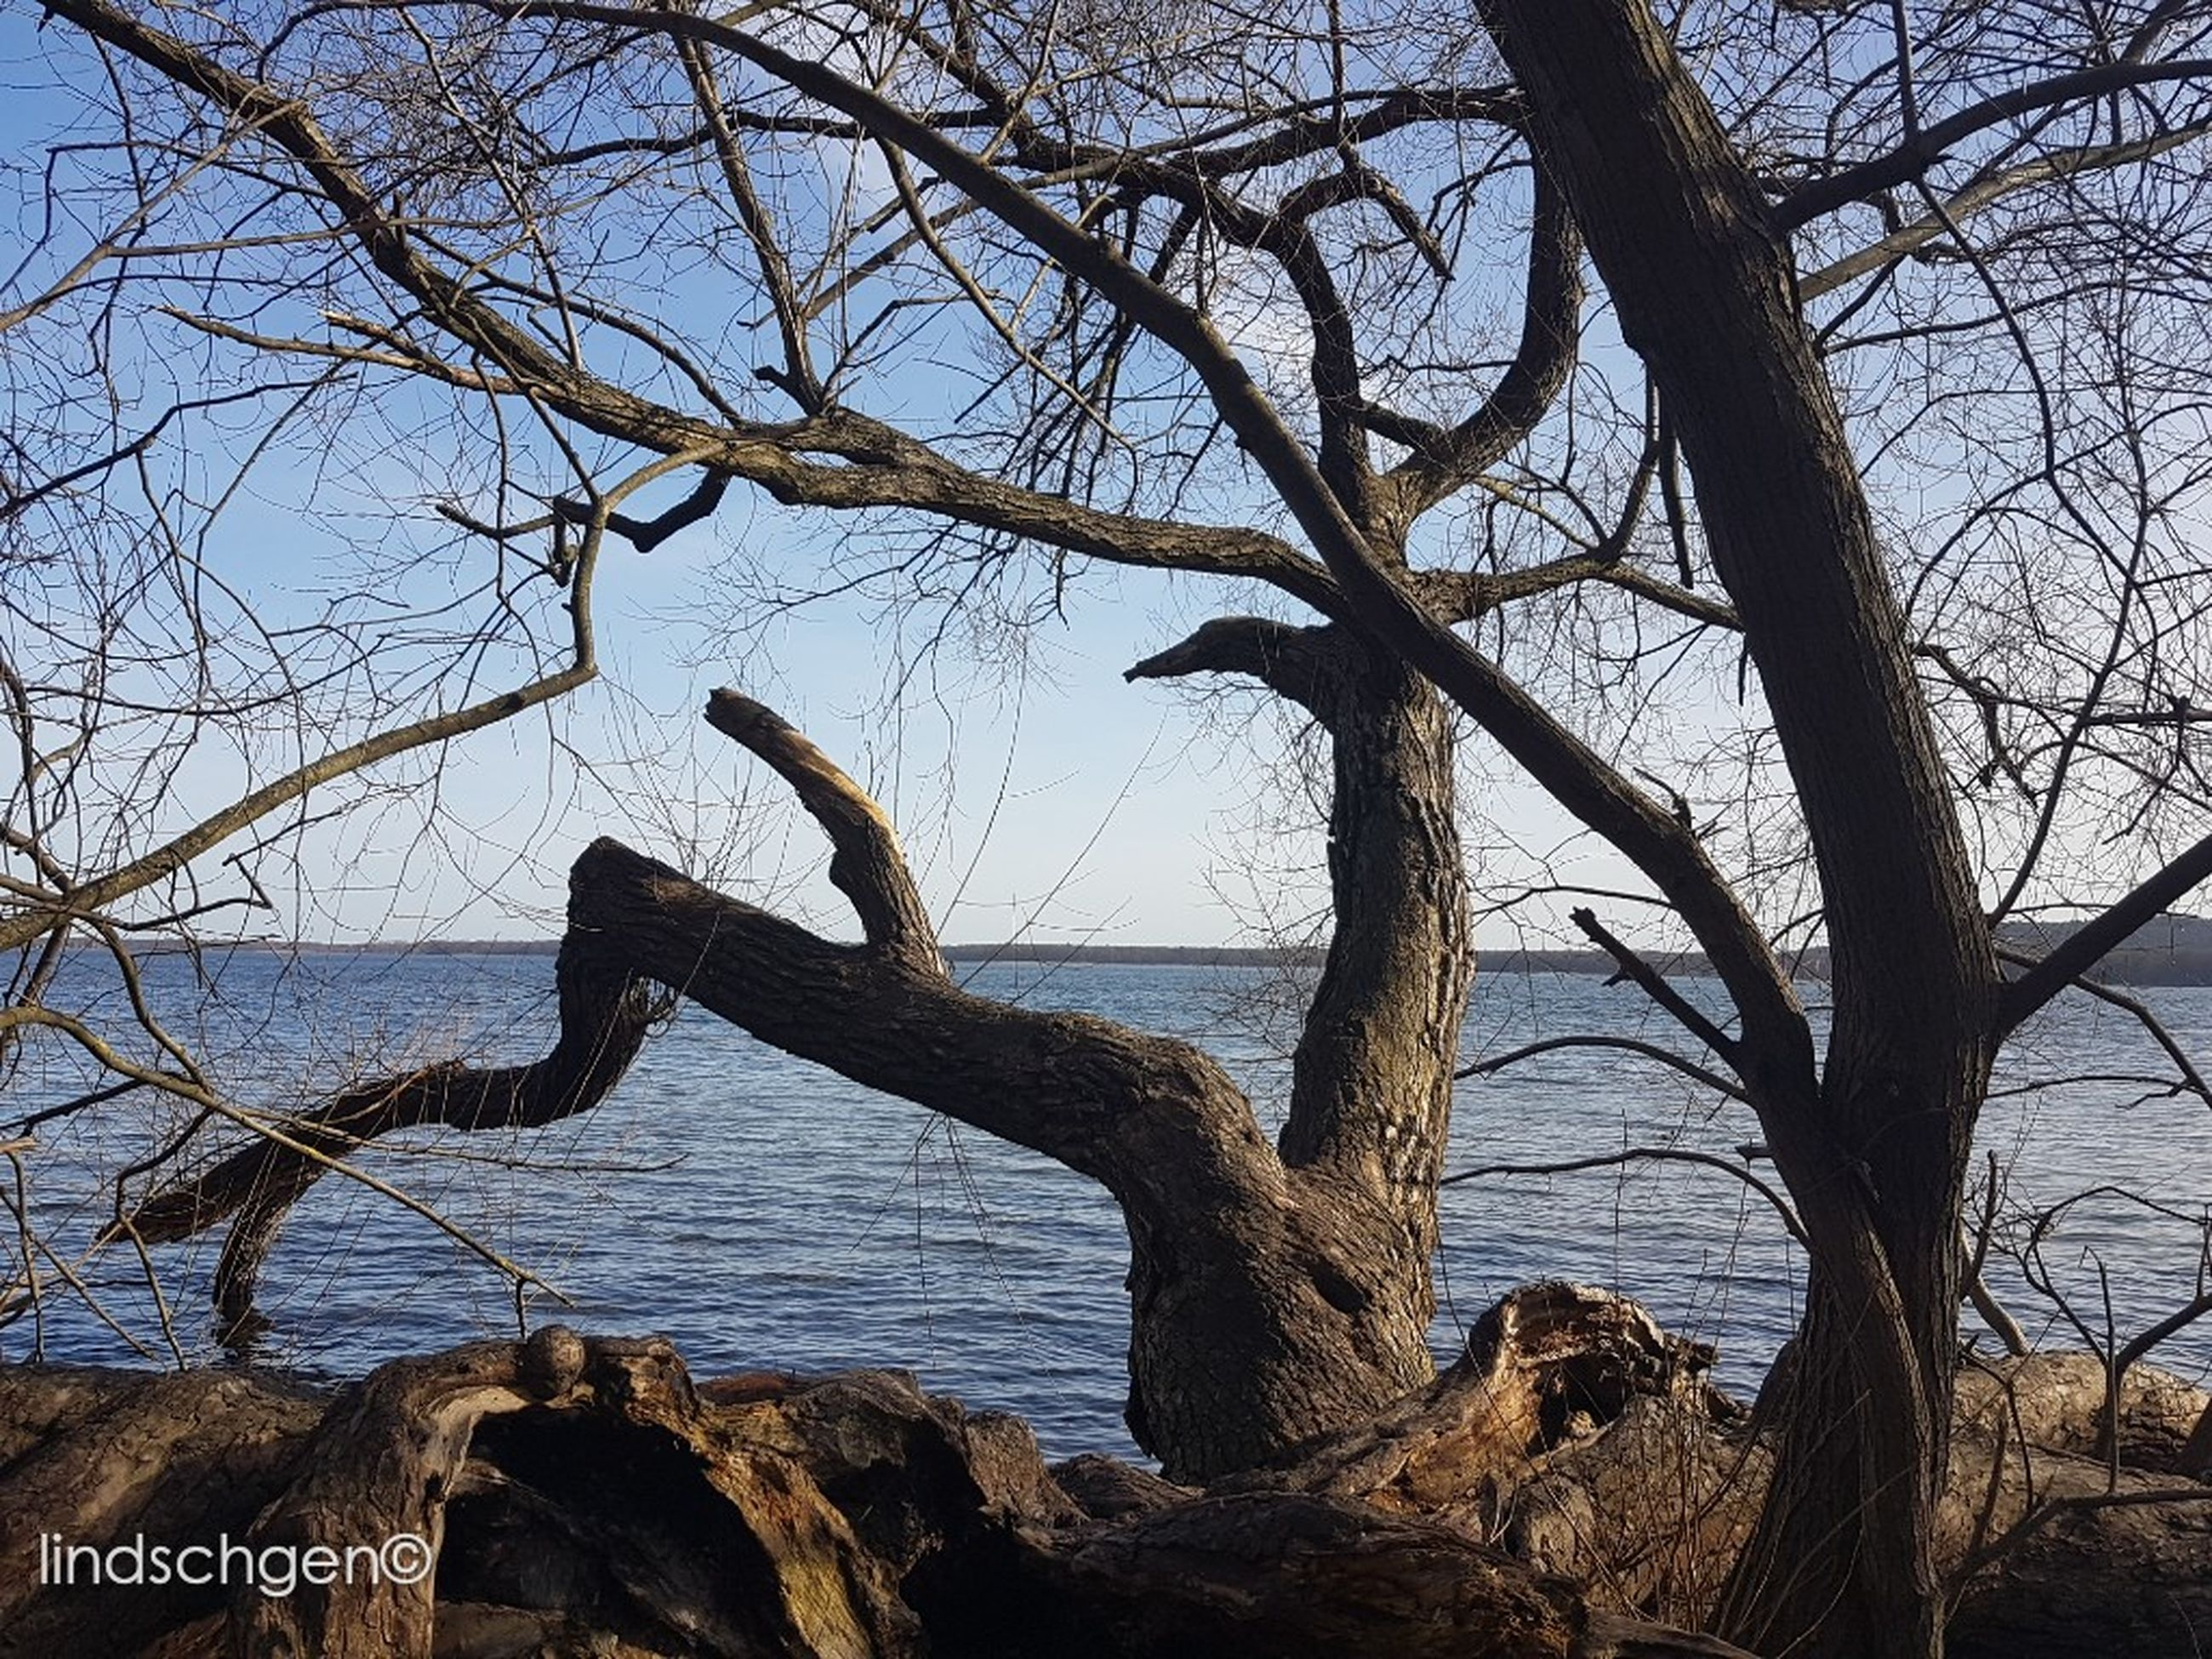 tree, branch, sky, nature, outdoors, no people, animal themes, beach, day, mammal